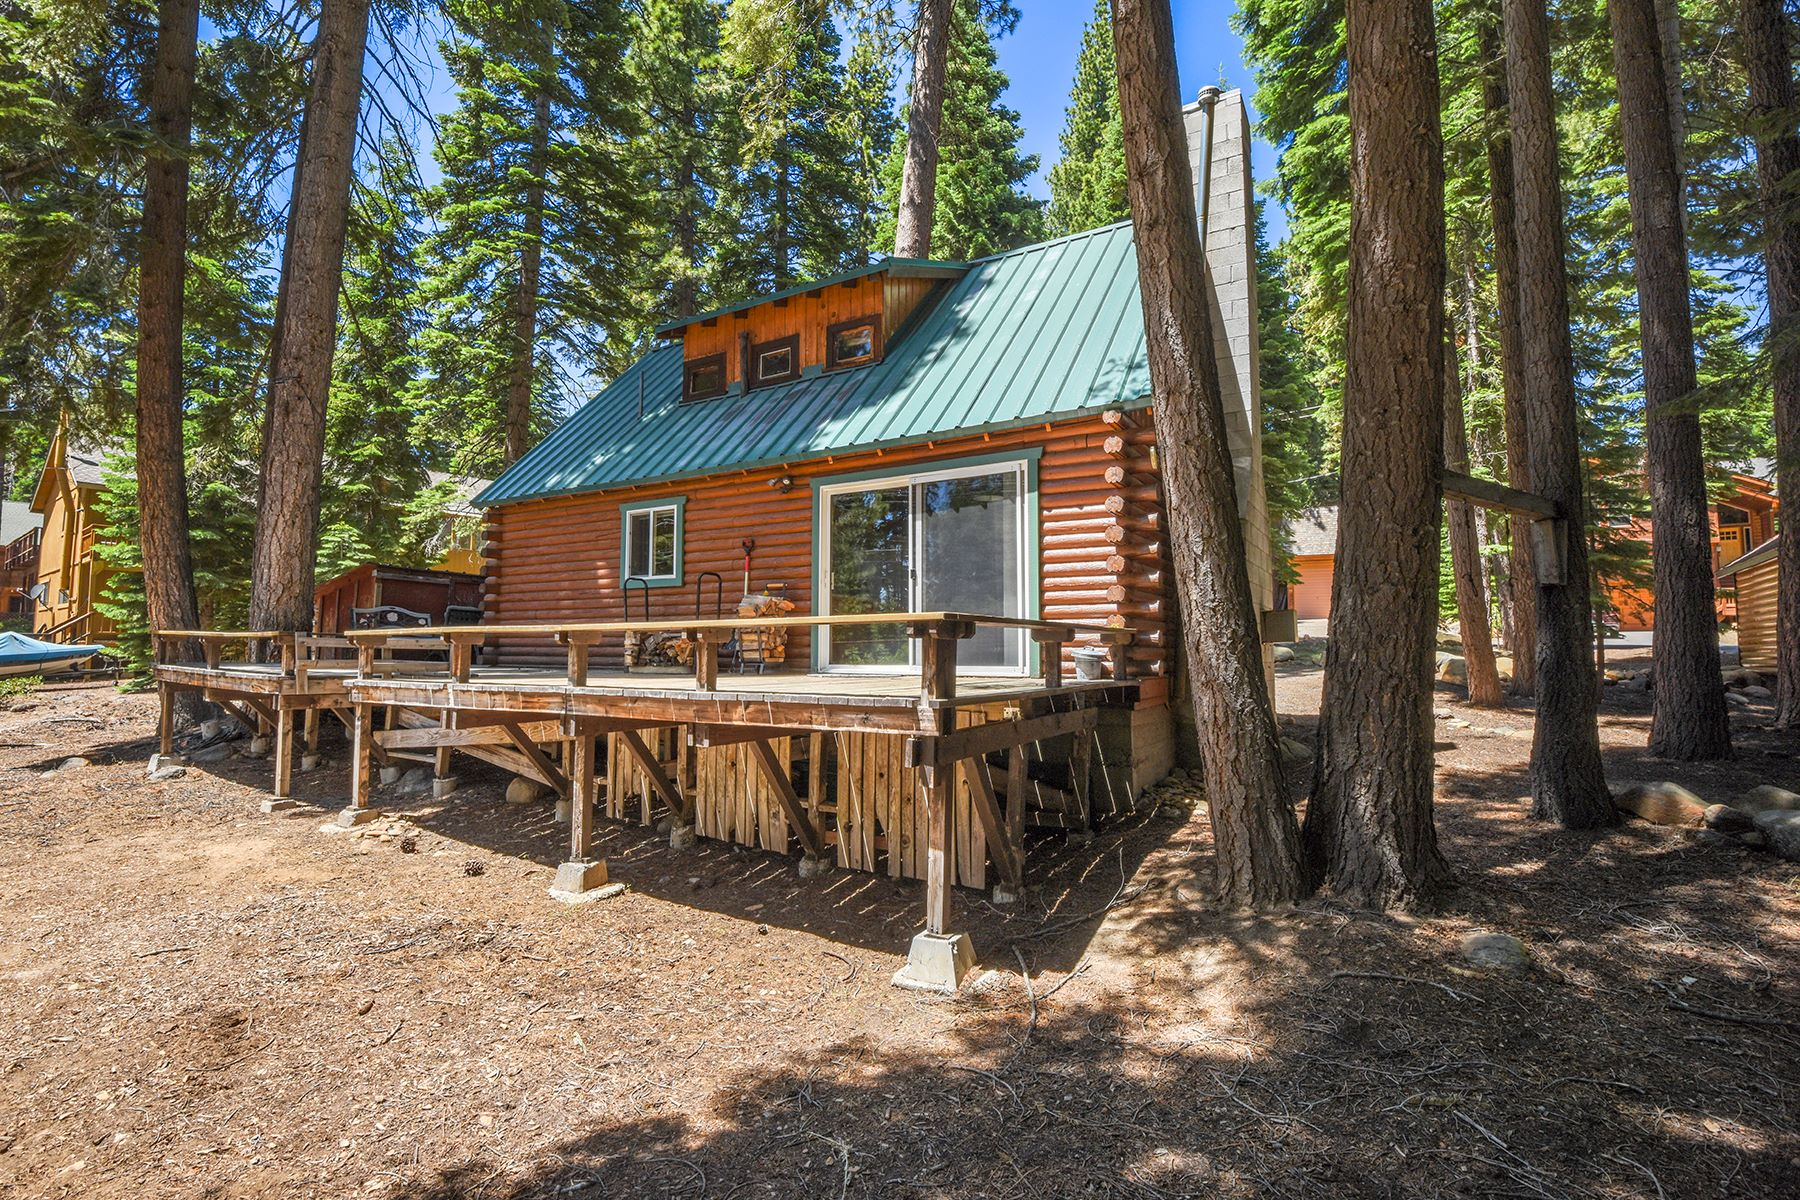 Additional photo for property listing at 6598 Wildwood Rd., Tahoe Vista, Ca 96148 6598 Wildwood Rd. Tahoe Vista, California 96148 United States